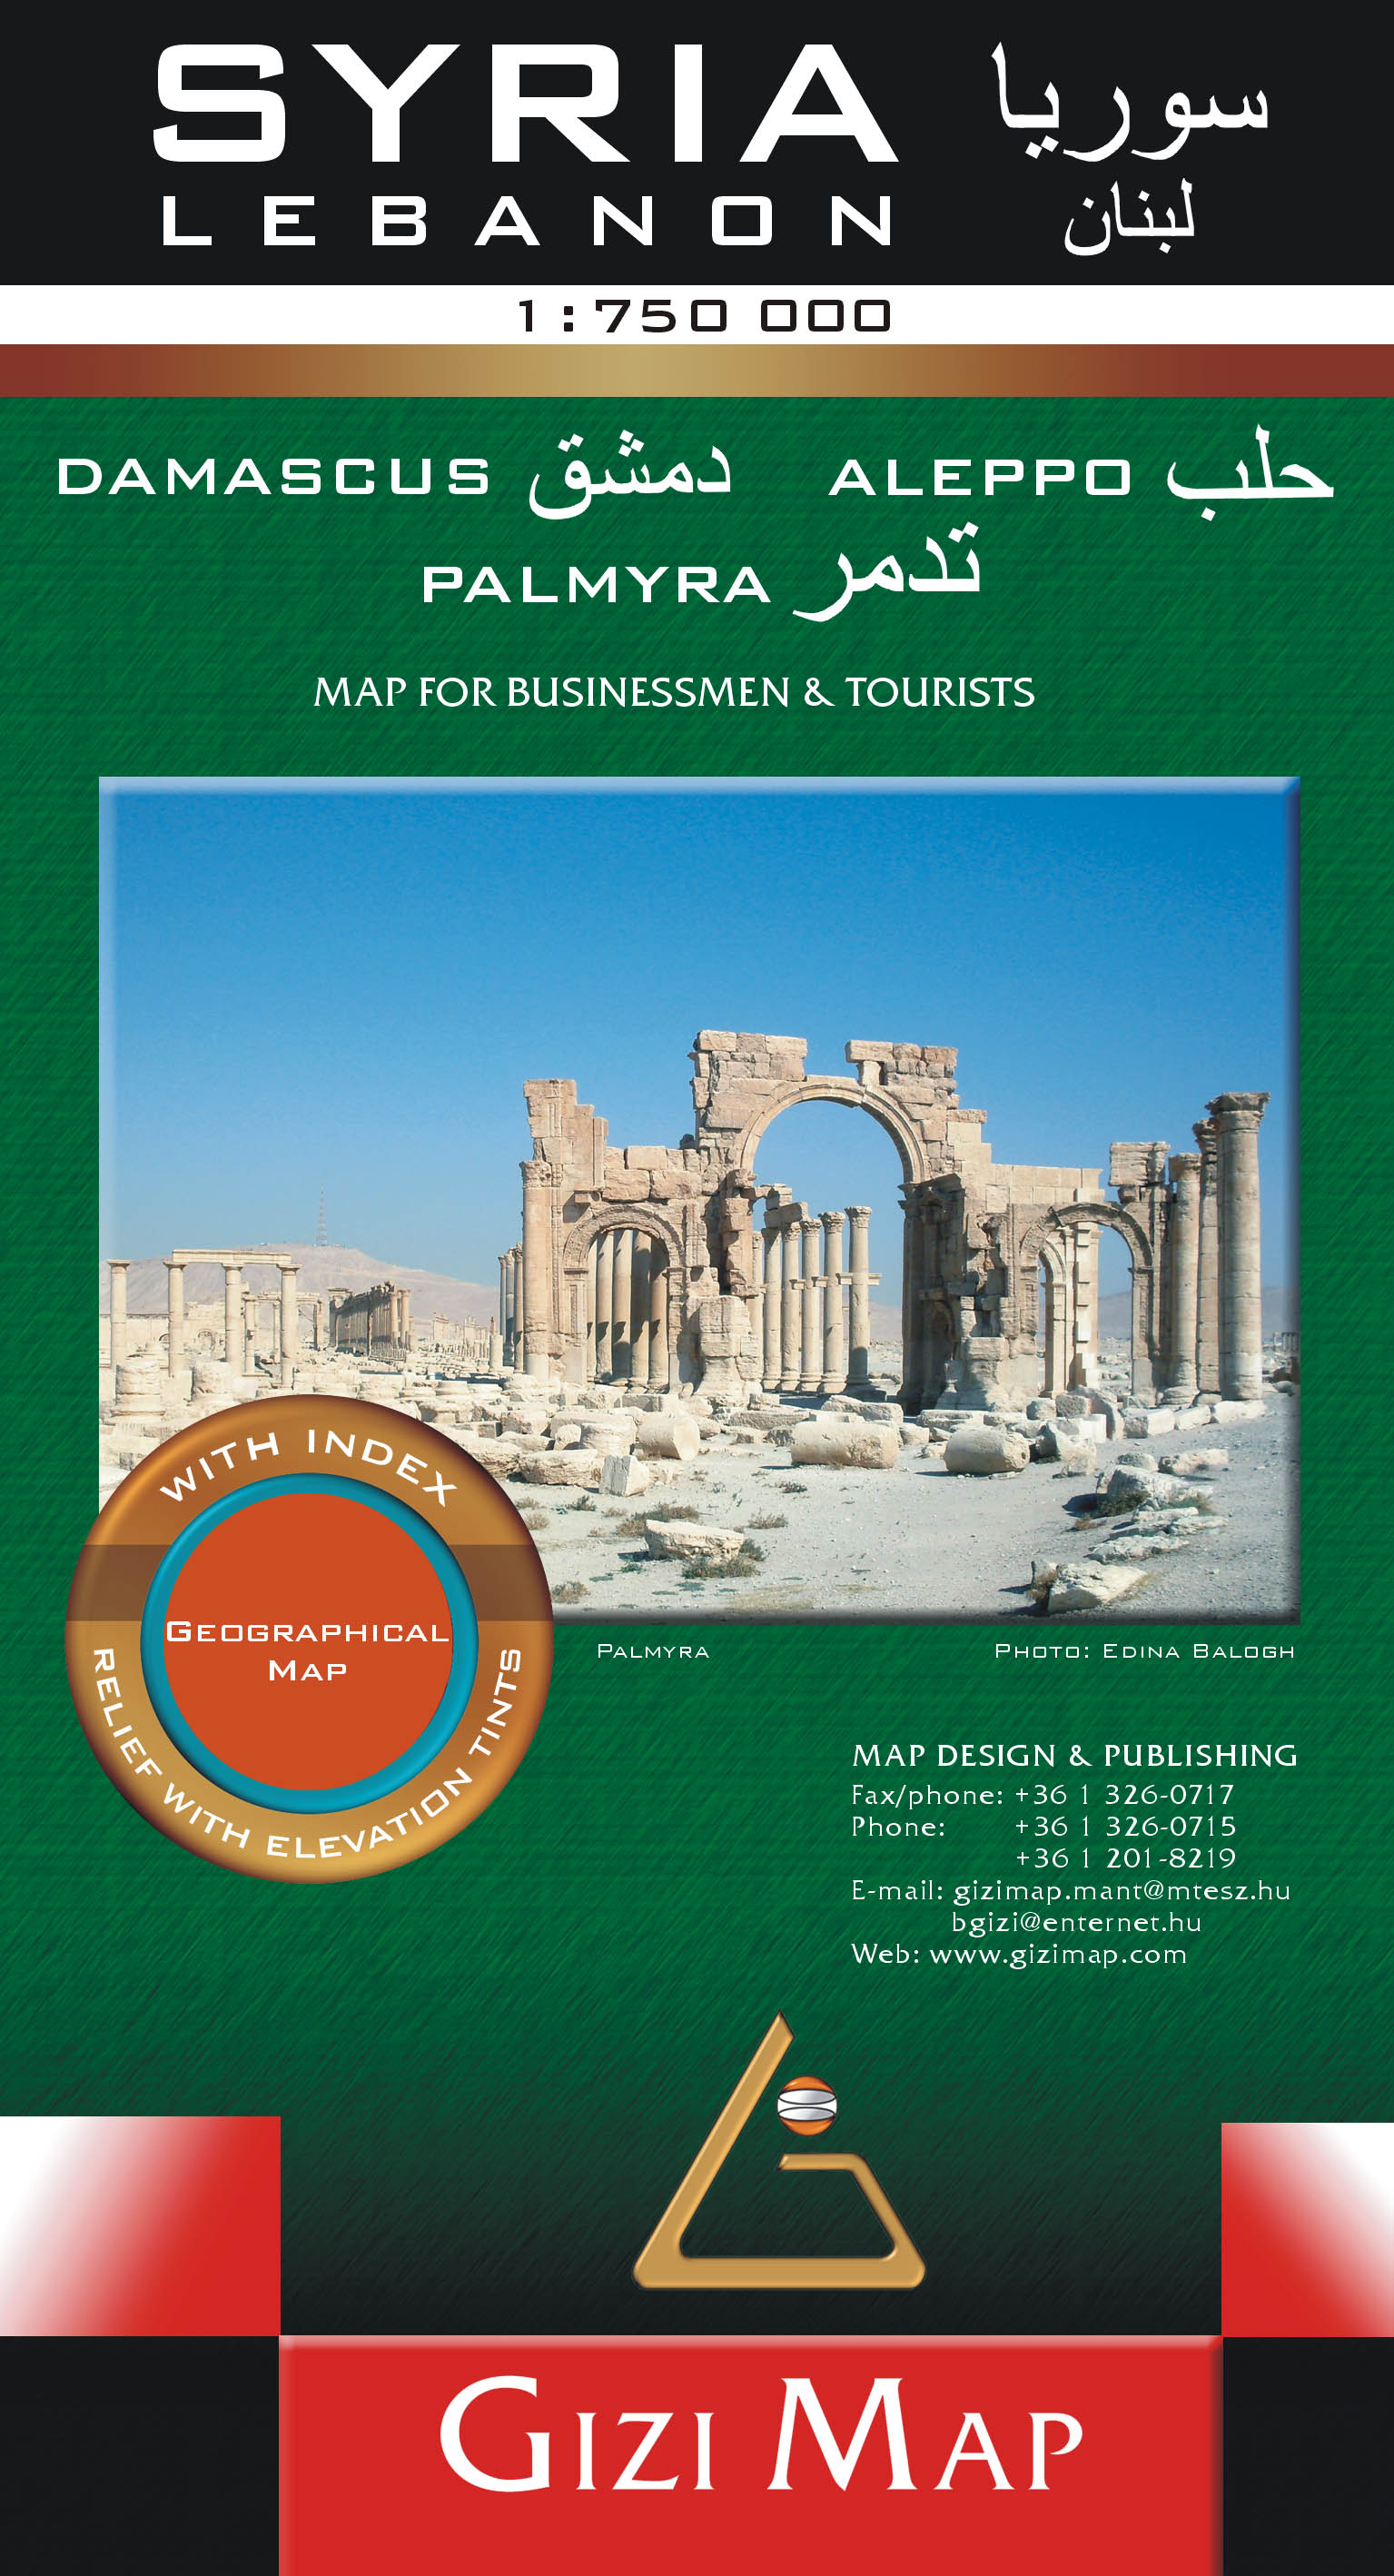 Syria-Lebanon geographical map with road and tourist information incl. inset city maps of Damascus, Aleppo and Palmyra